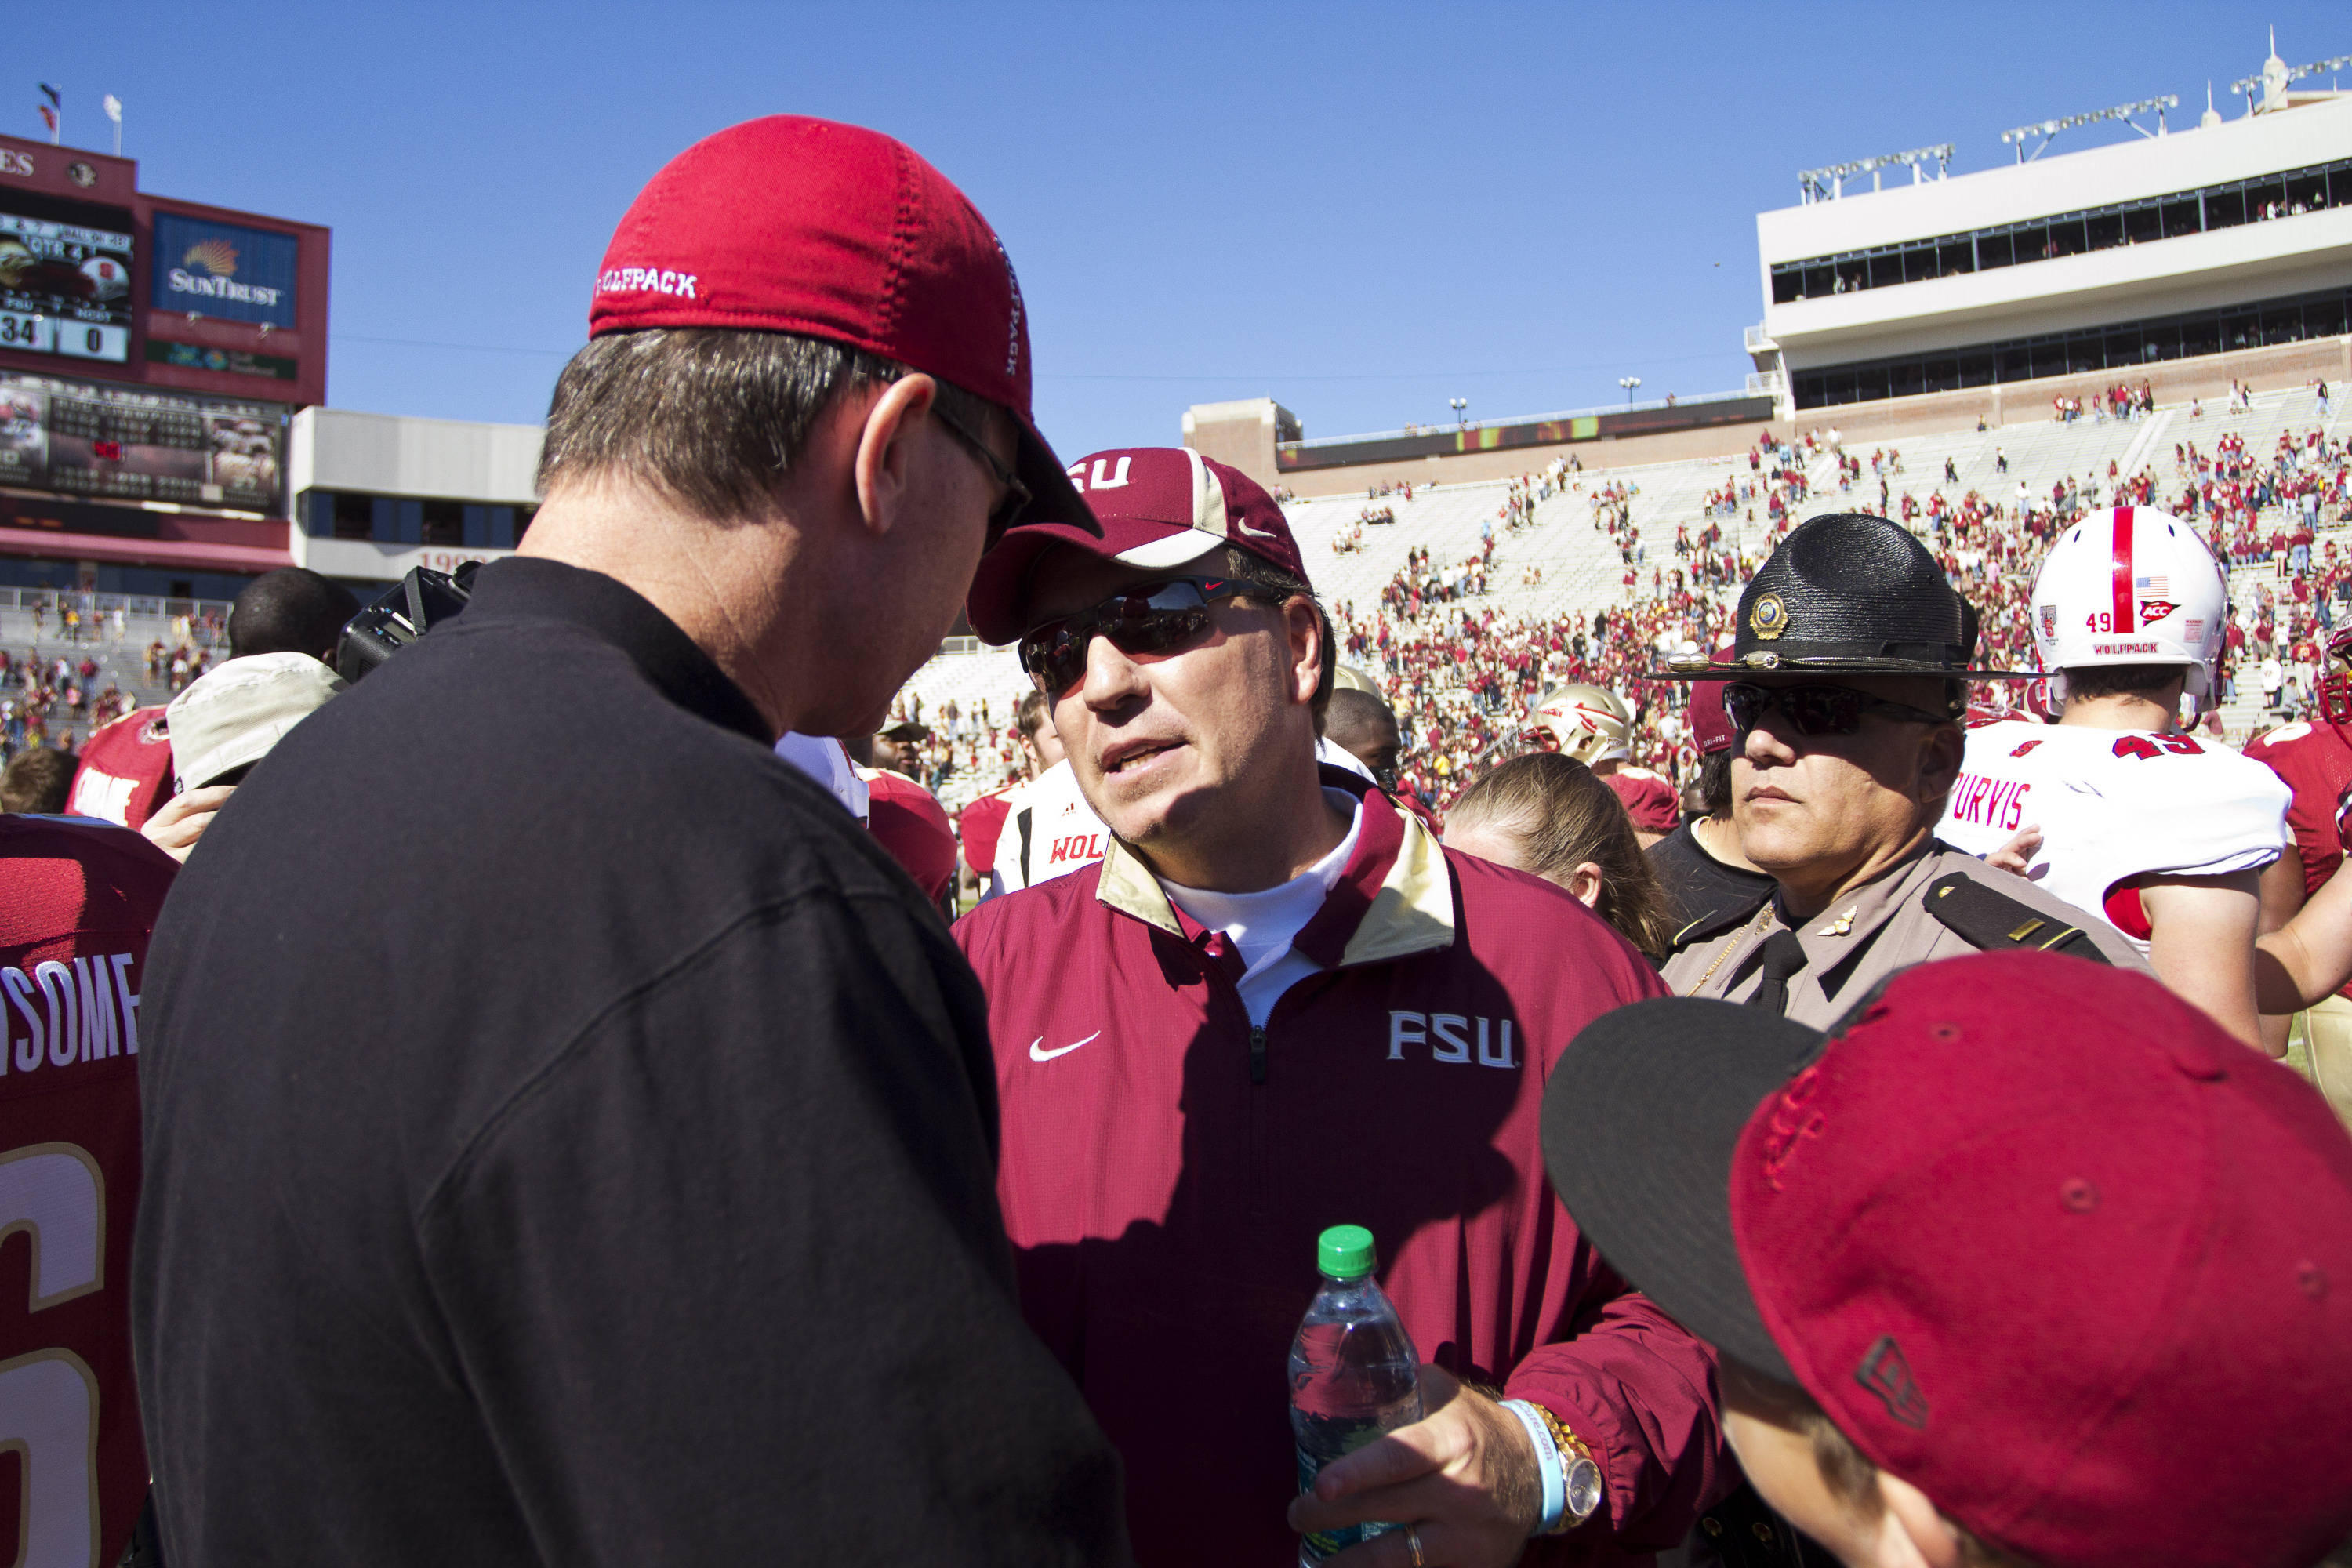 Jimbo Fisher meets with the other team after the football game against NC State on October 29, 2011.